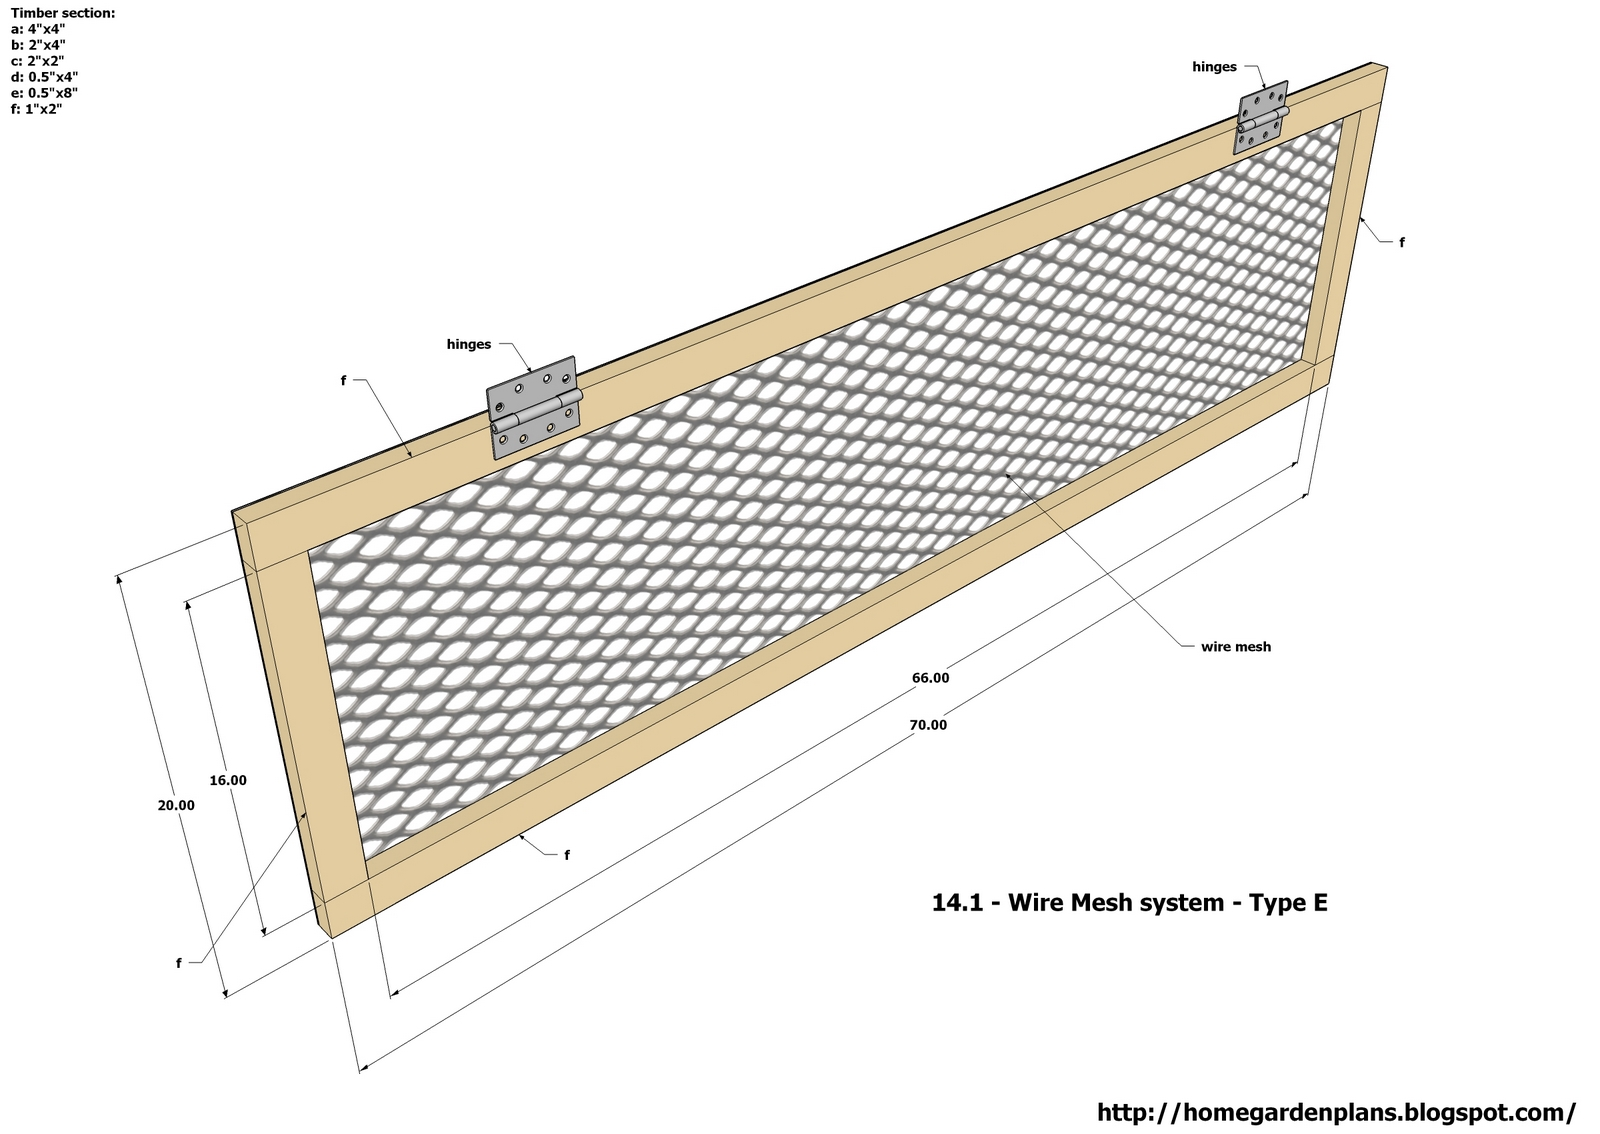 Hen 39 s access free chicken coop plans pdf for Chicken coop plans free pdf